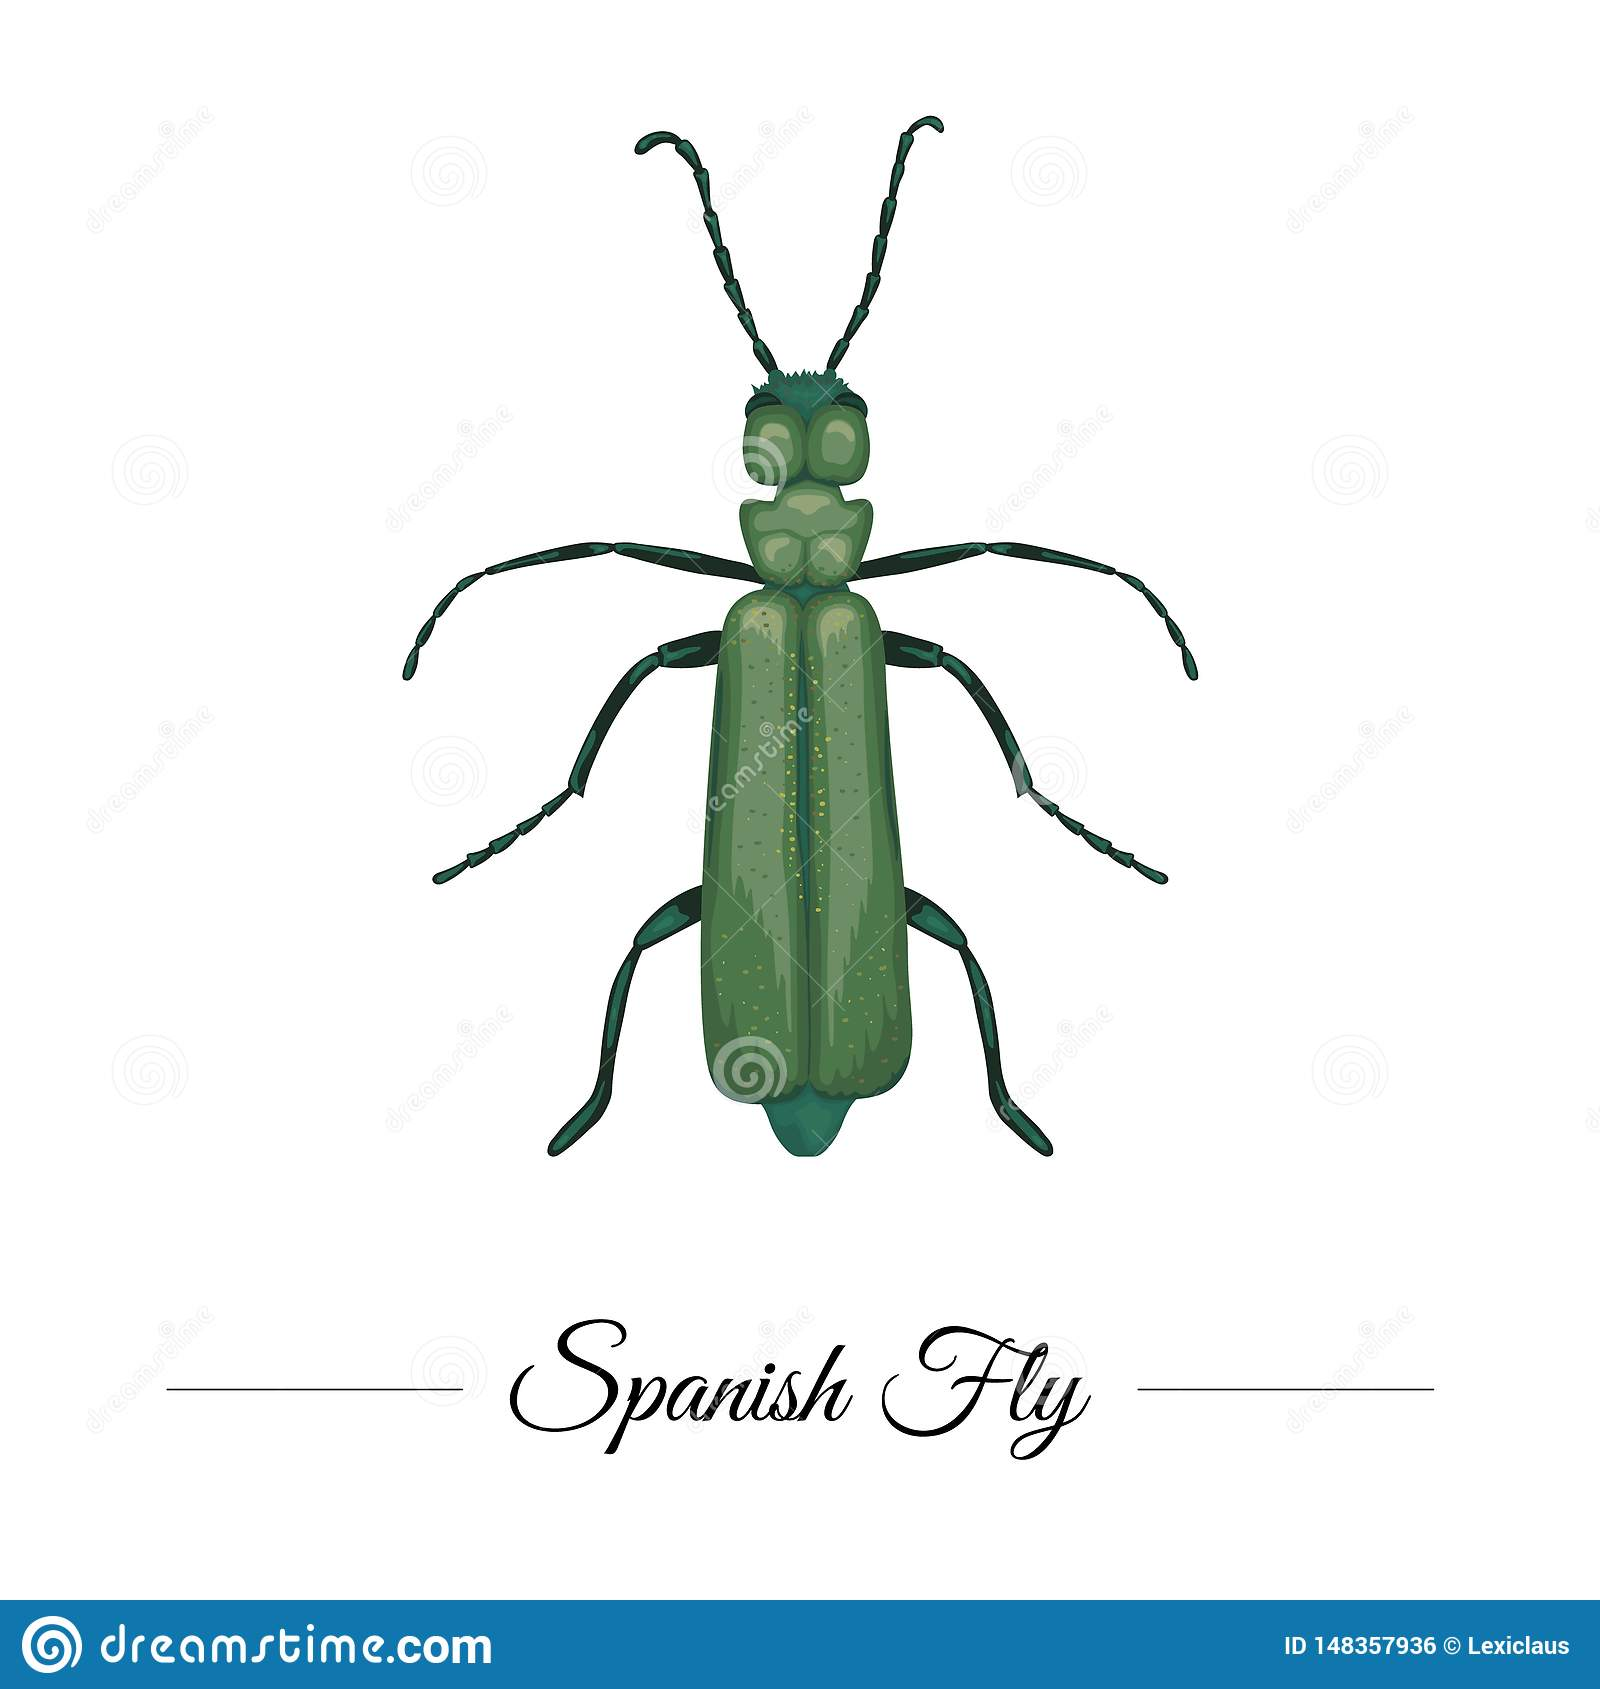 Vector hand drawn colored tropical green Spanish fly isolated on white background. Tropic themed logotype for natural design.